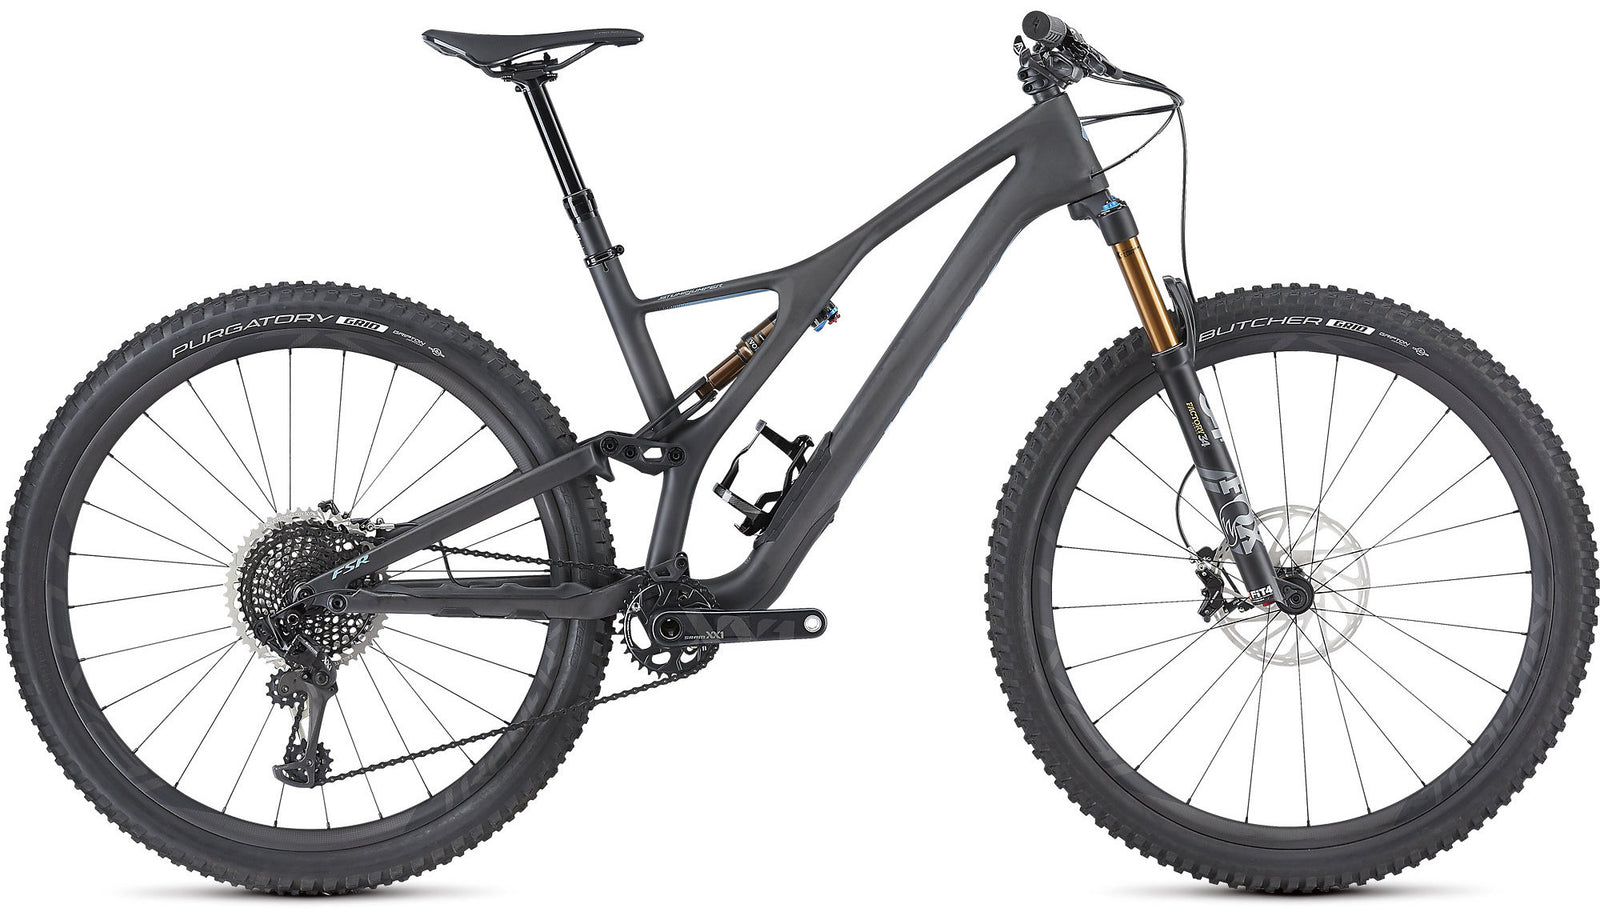 2019 All-New S-Works Stumpjumper ST 29